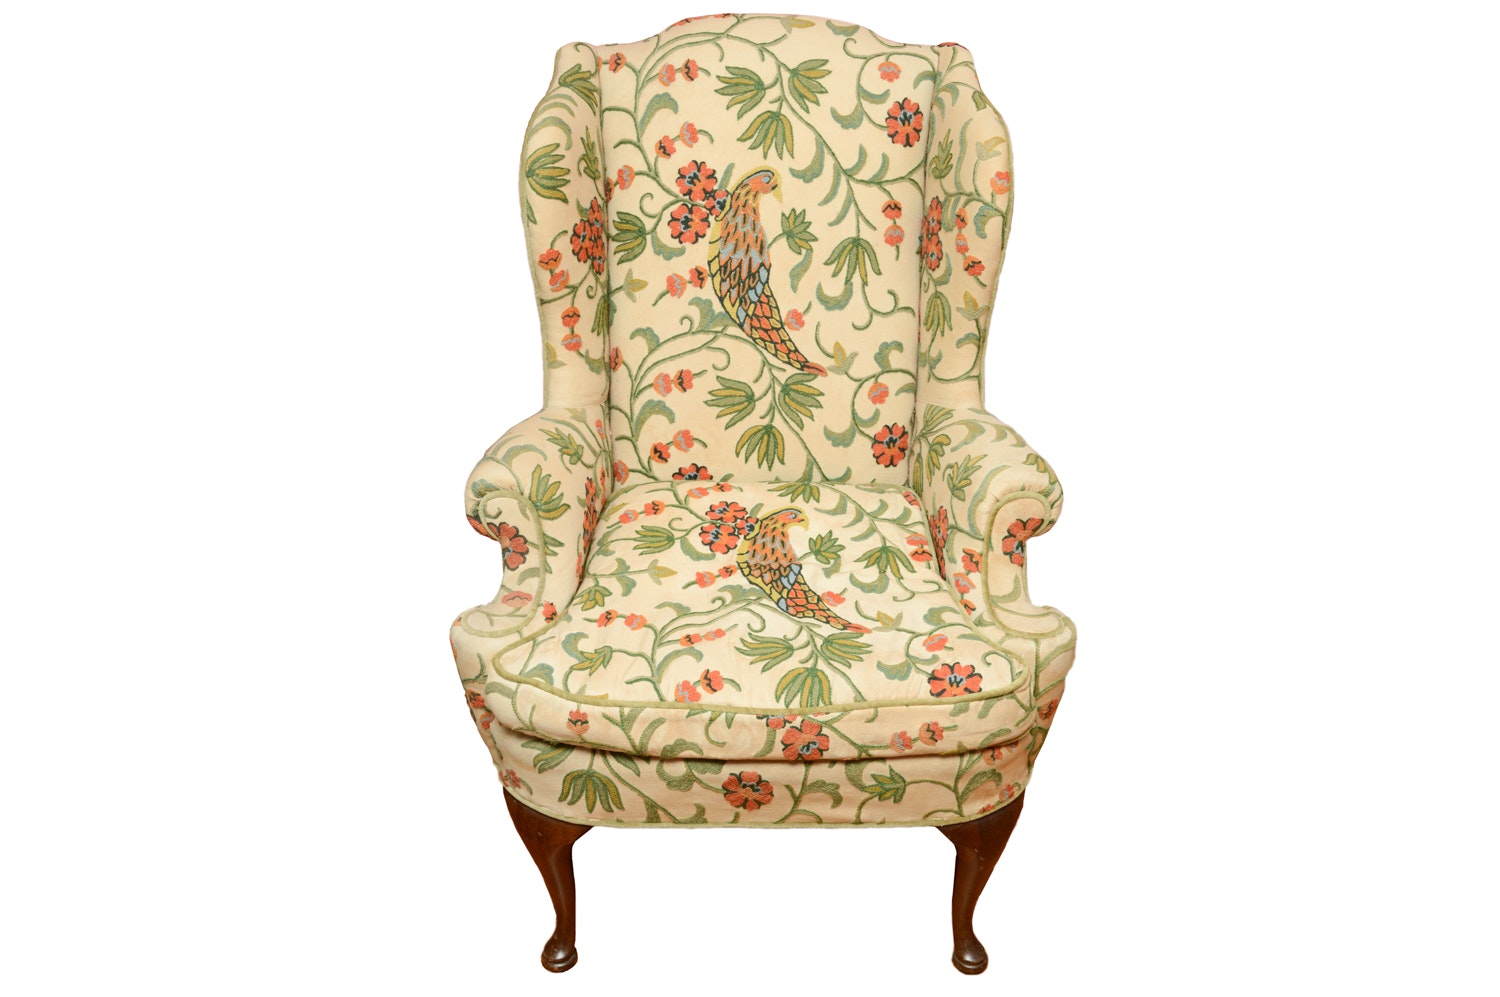 Vintage Upholstered Wingback Armchair by Marshall Field & Company